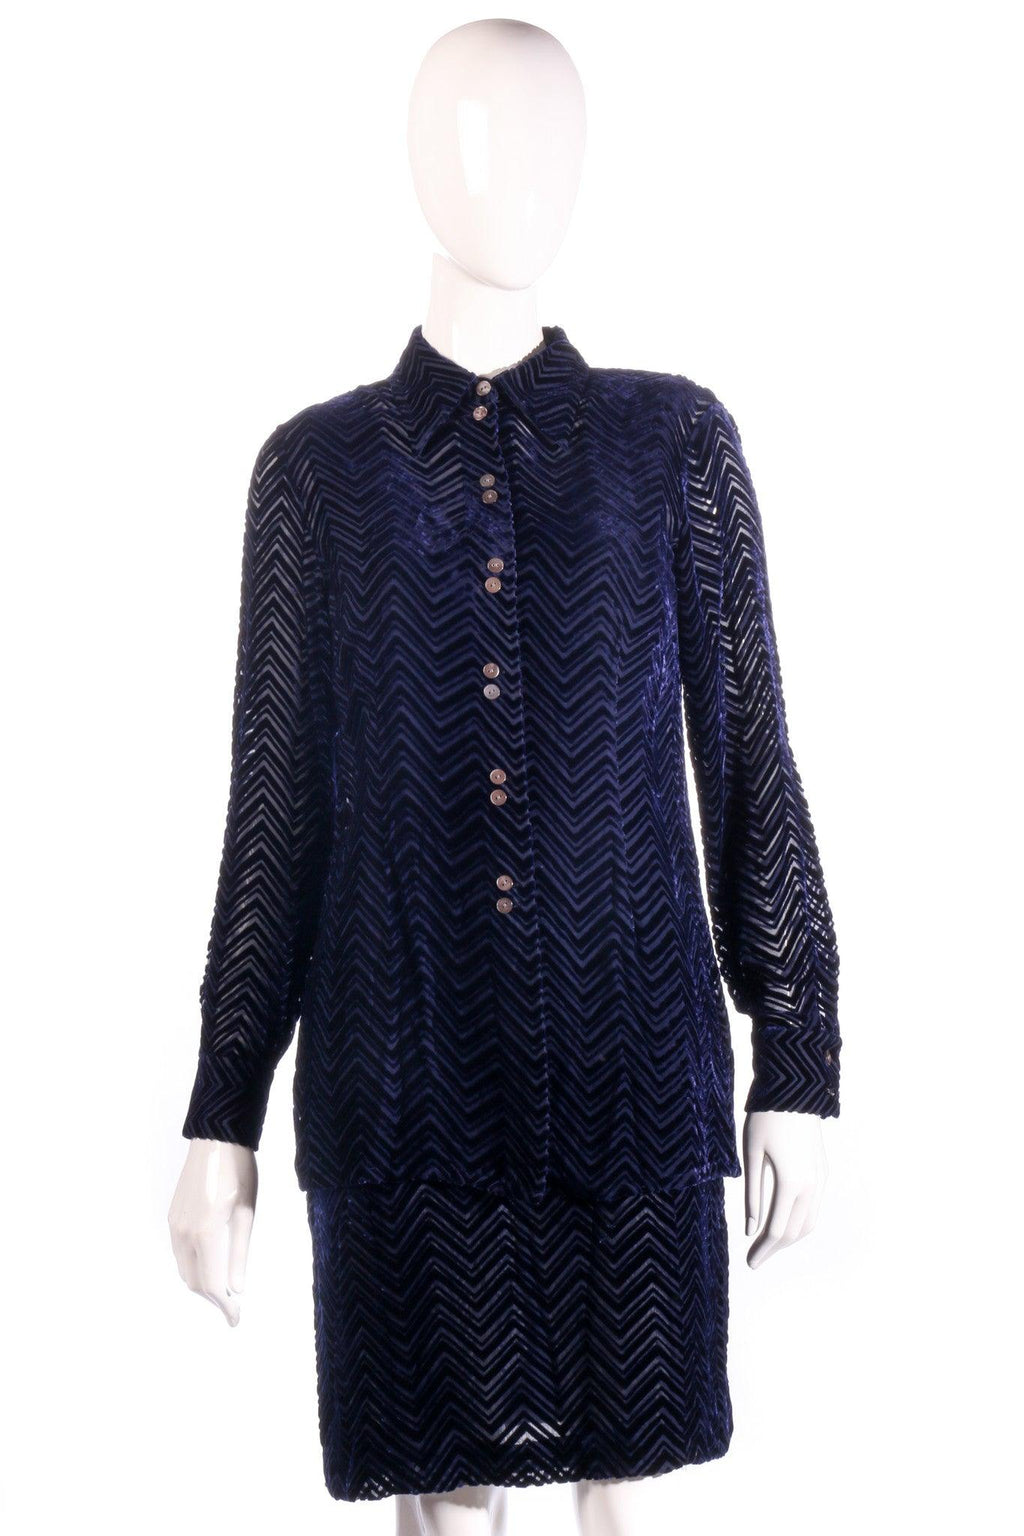 Austin Reed blue velvet shirt and skirt  size 6